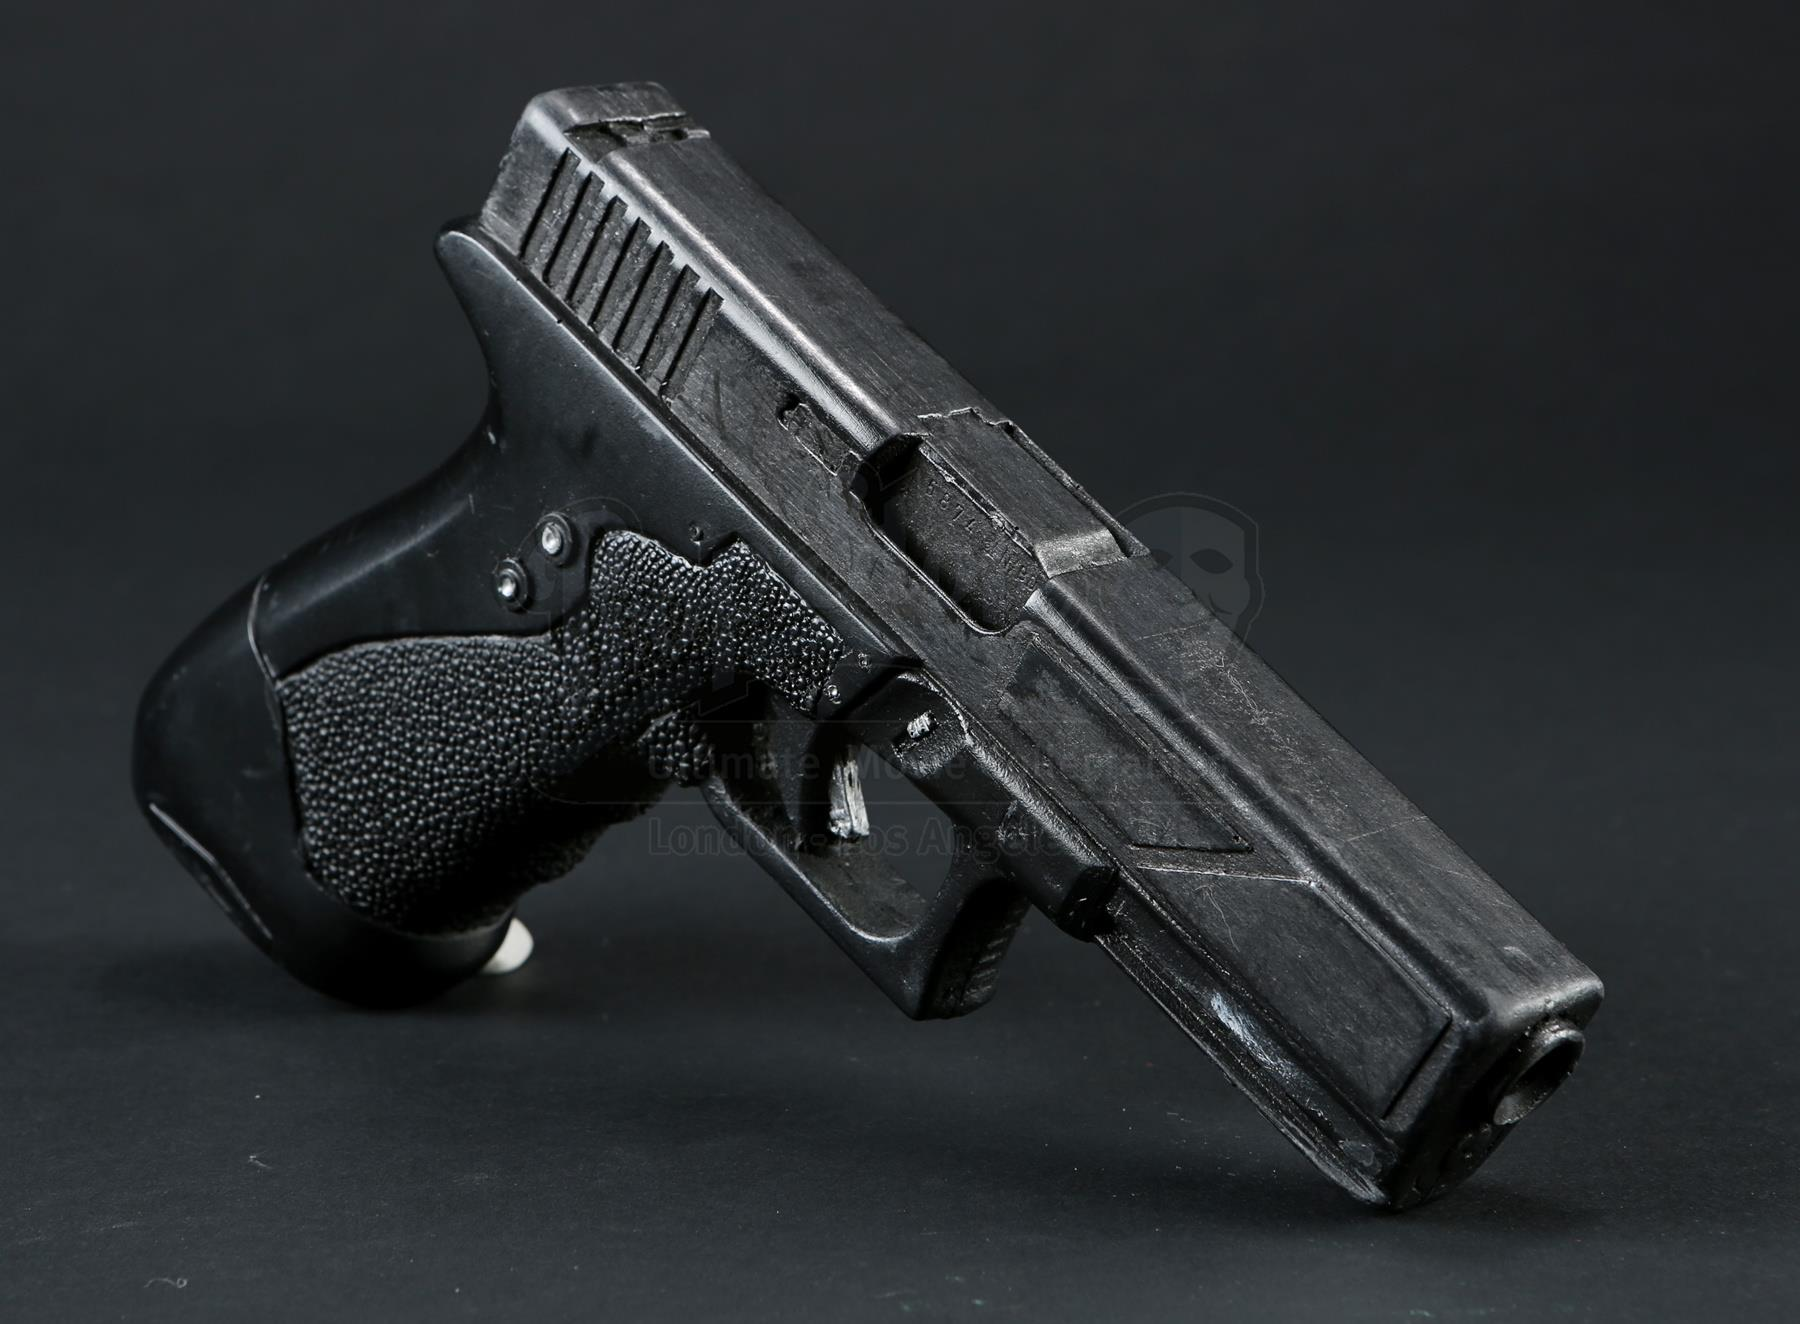 Section 9 Glock Pistol - Current price: $250